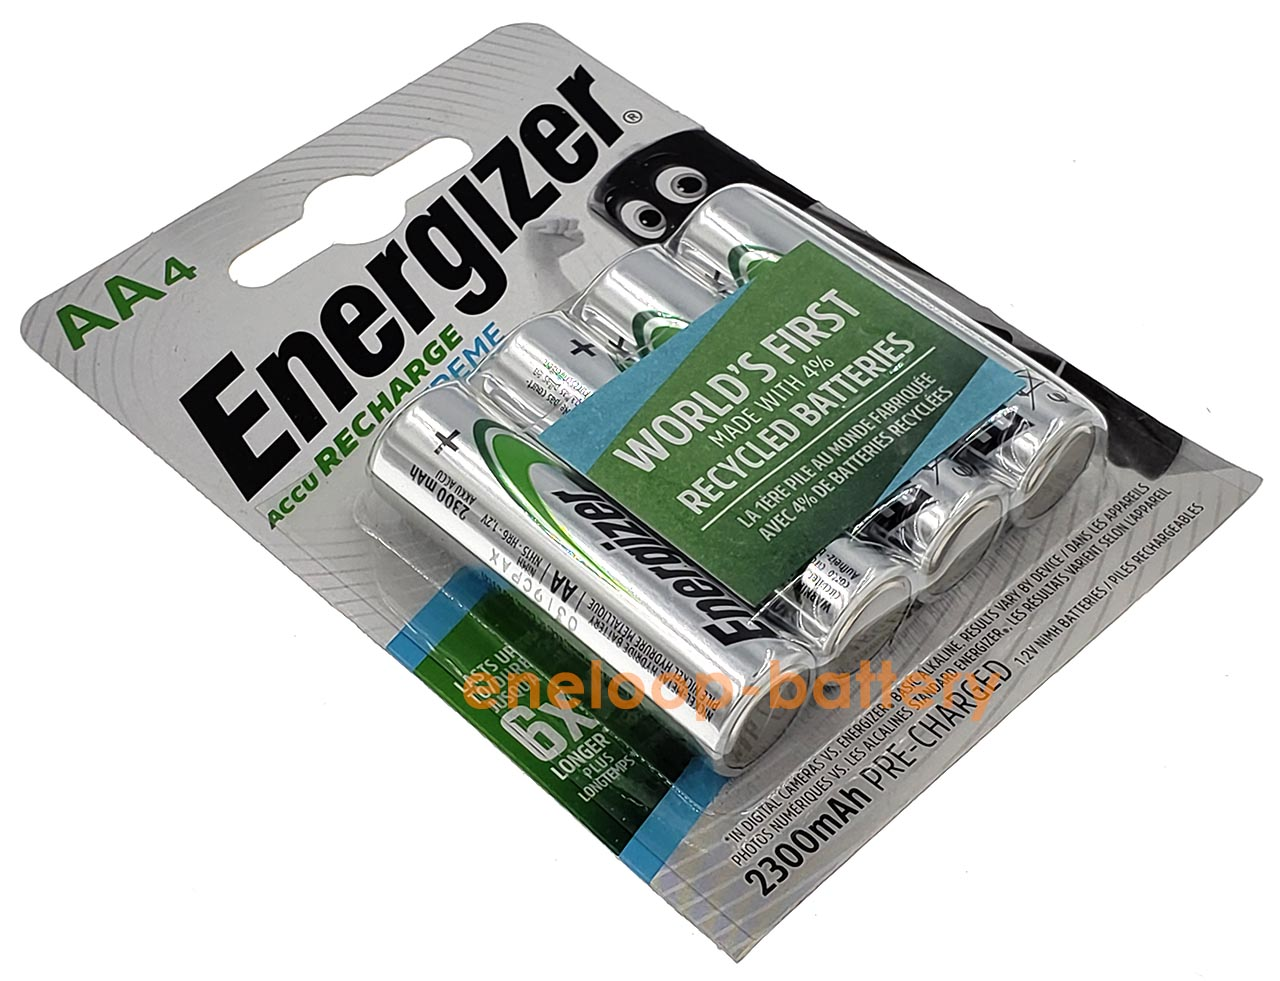 AA Energizer Extreme 2300 mah Pre-Charged